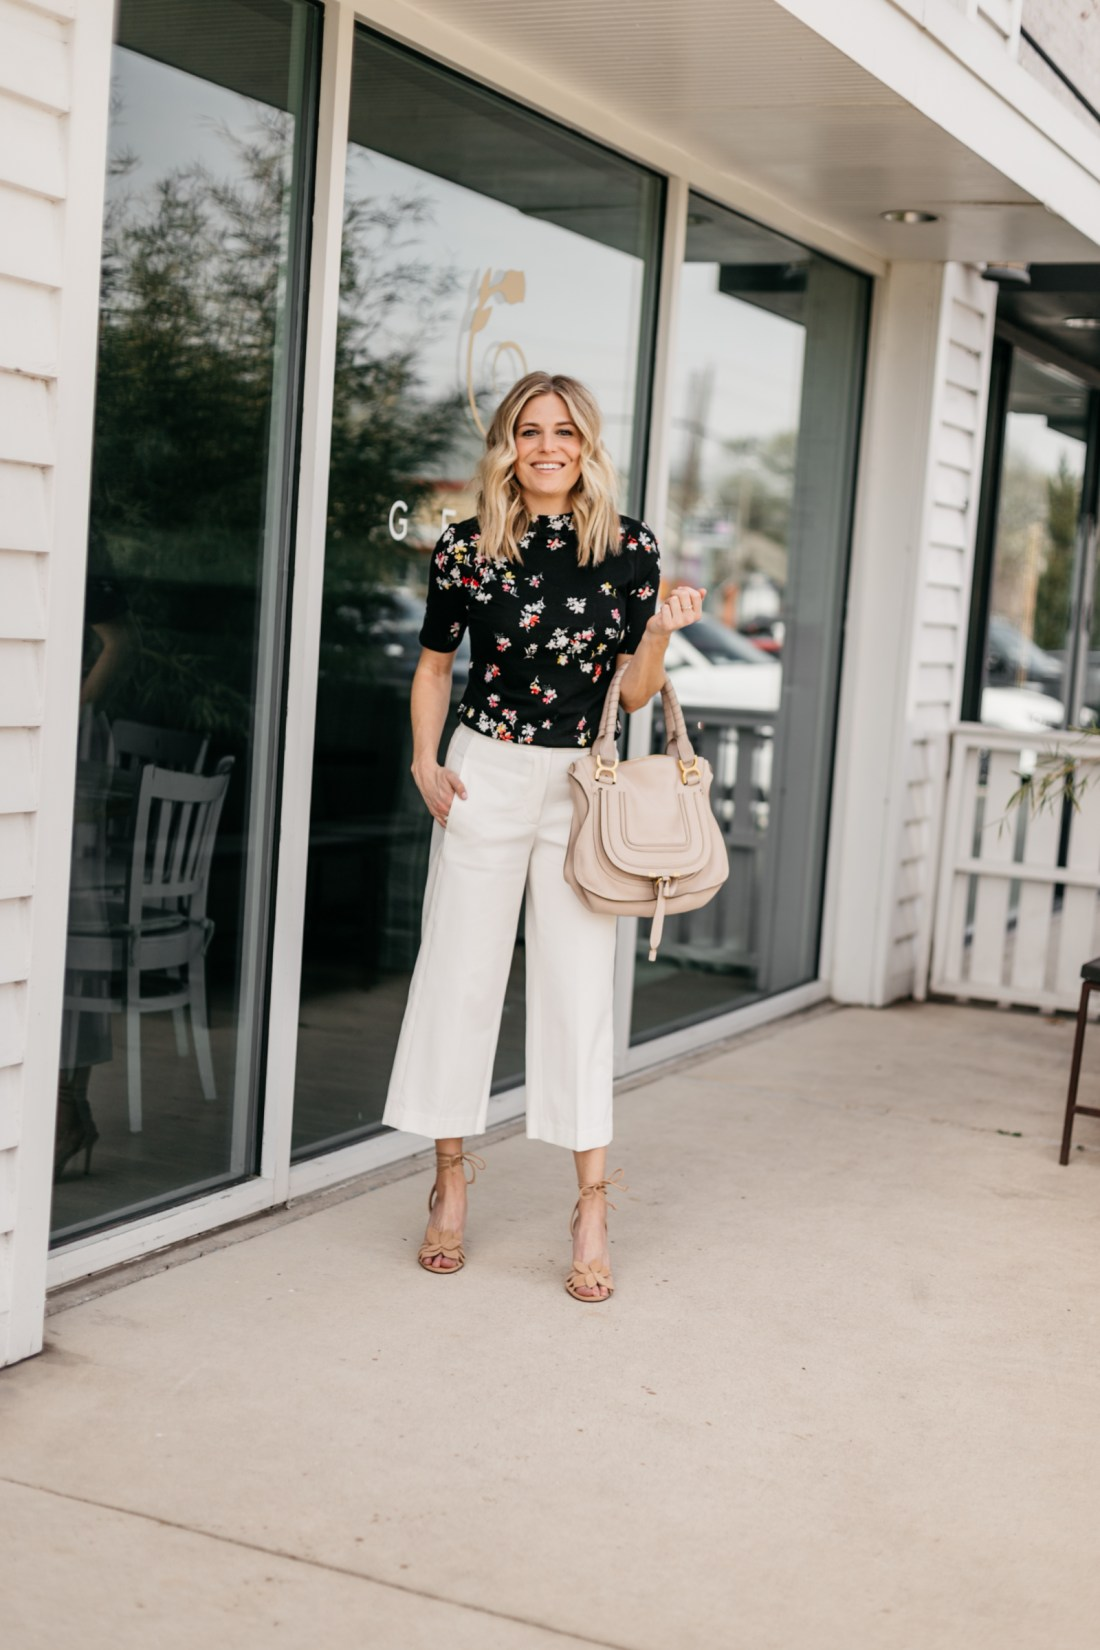 Brooke Burnett is featuring a Floral Mock Neck Top and The Wide Leg Marina Pant from Ann Taylor